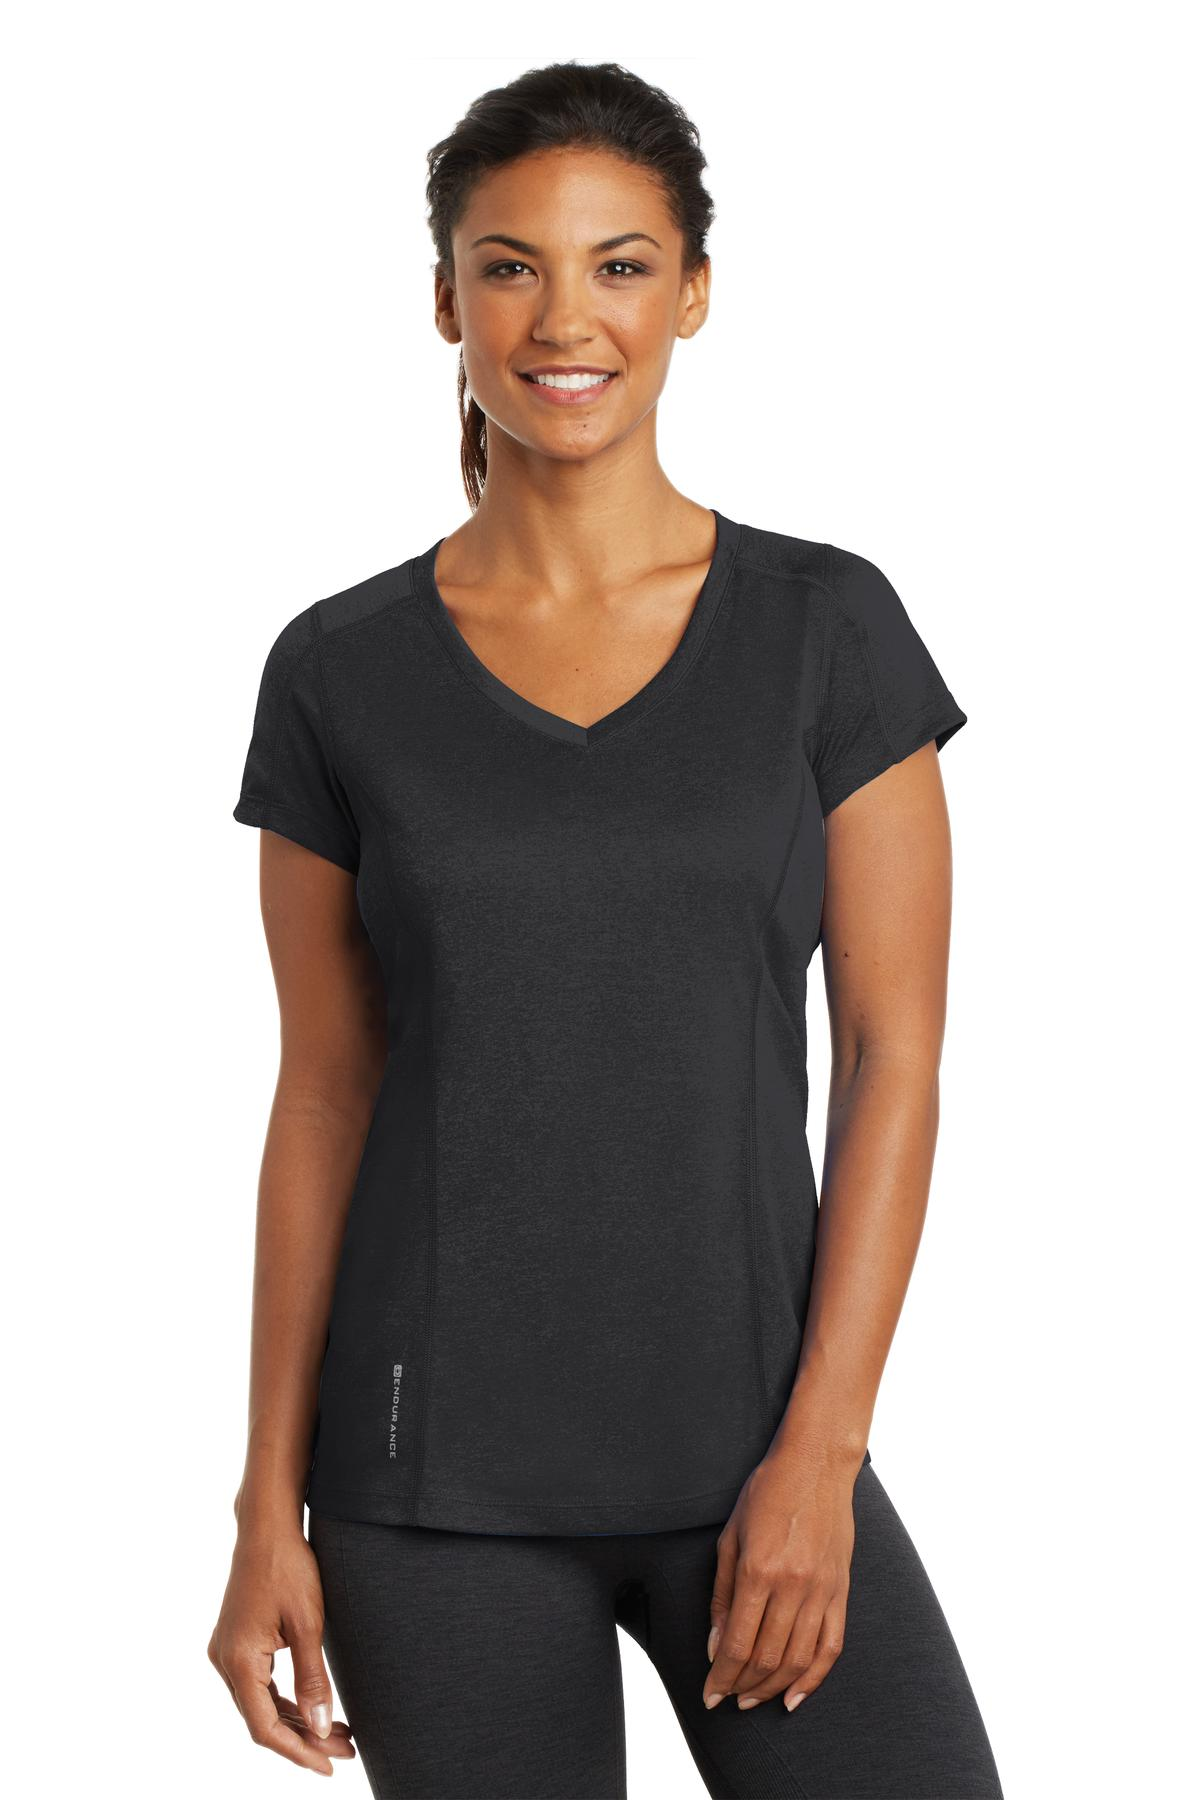 OGIO® LOE320 - ENDURANCE Ladies Pulse V-Neck